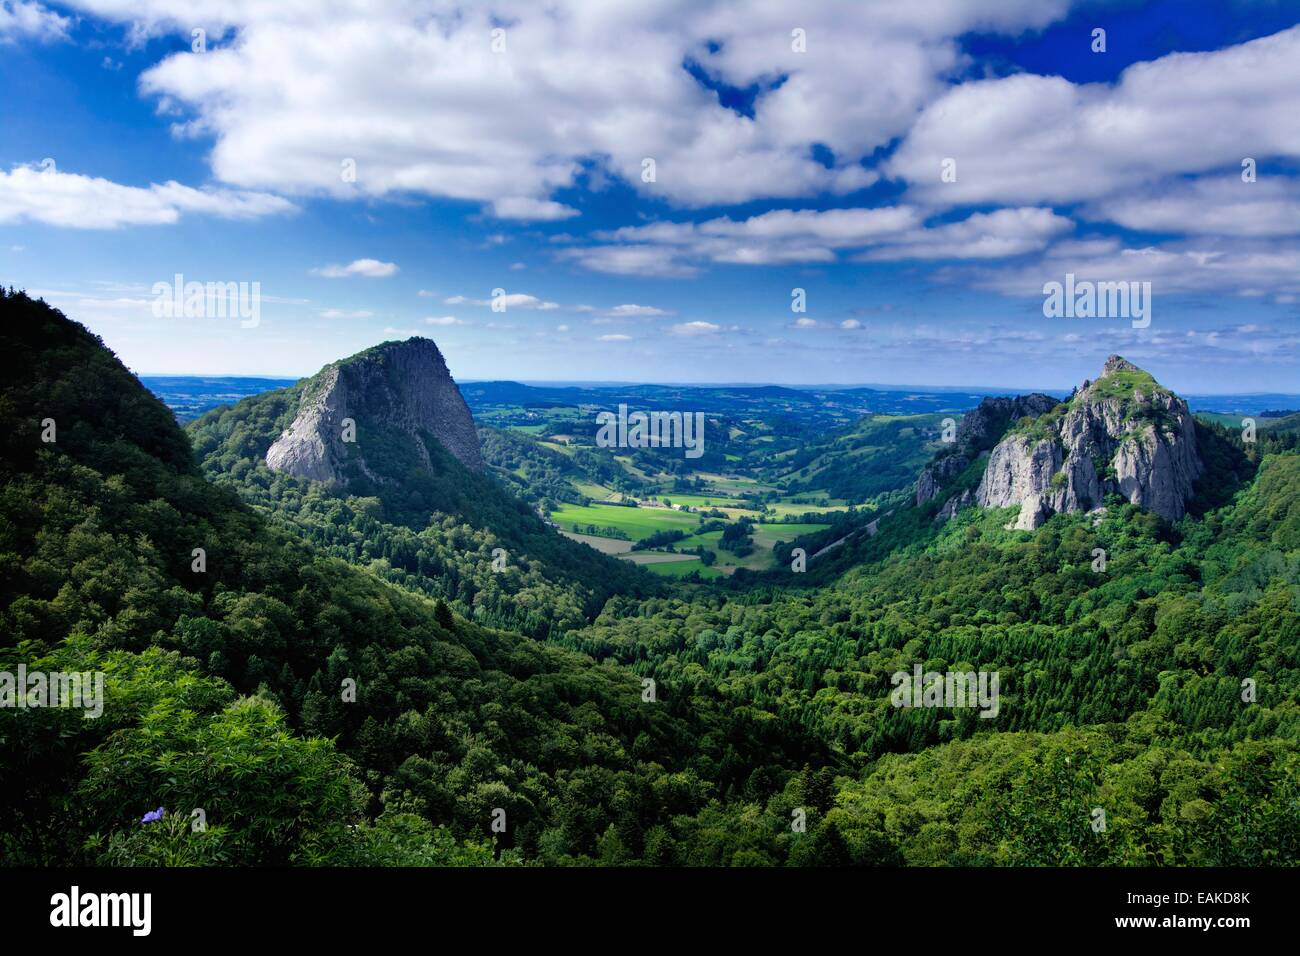 Tuiliere and Sanadoire Volcanic vents in the Massif of Sancy, Puy de Dome, Auvergne, France, Europe - Stock Image